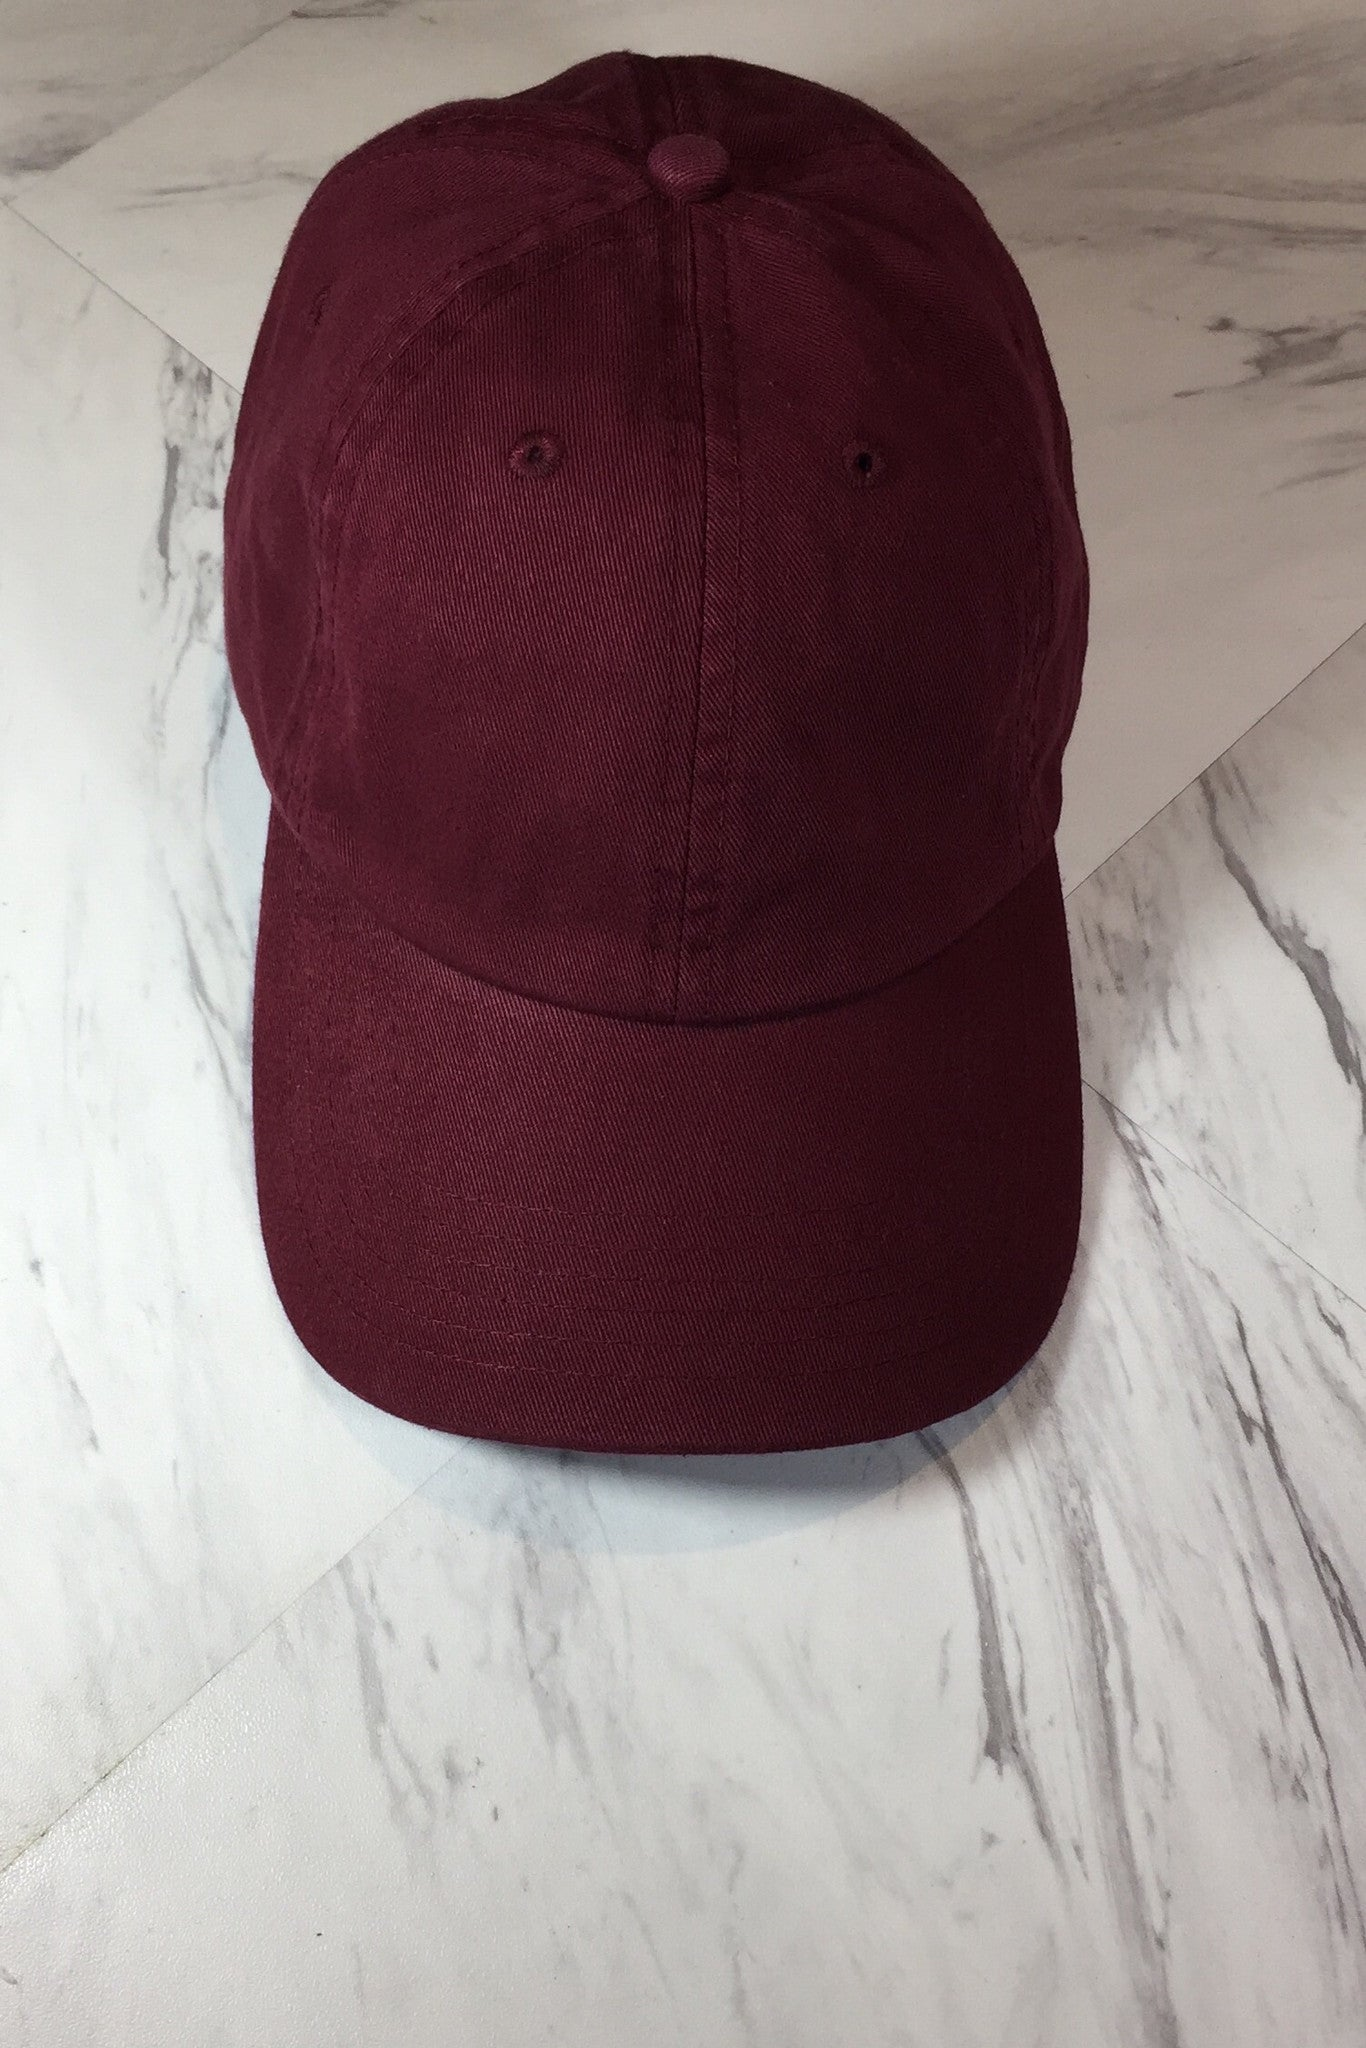 FADED BURGUNDY BASEBALL HAT